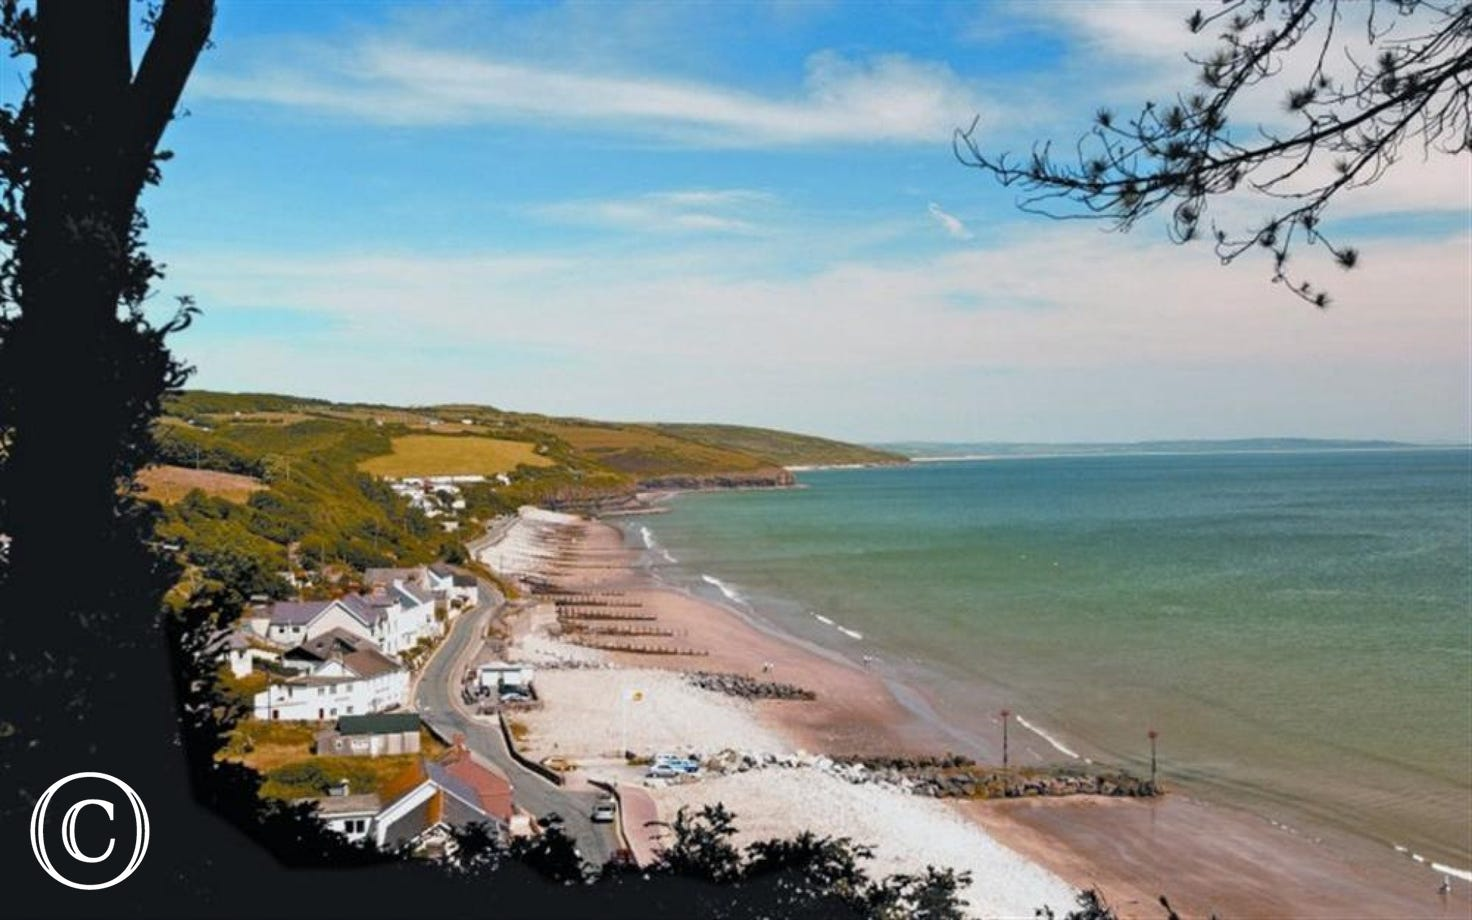 View of Amroth beach with shops, Inns and restaurants a short drive away